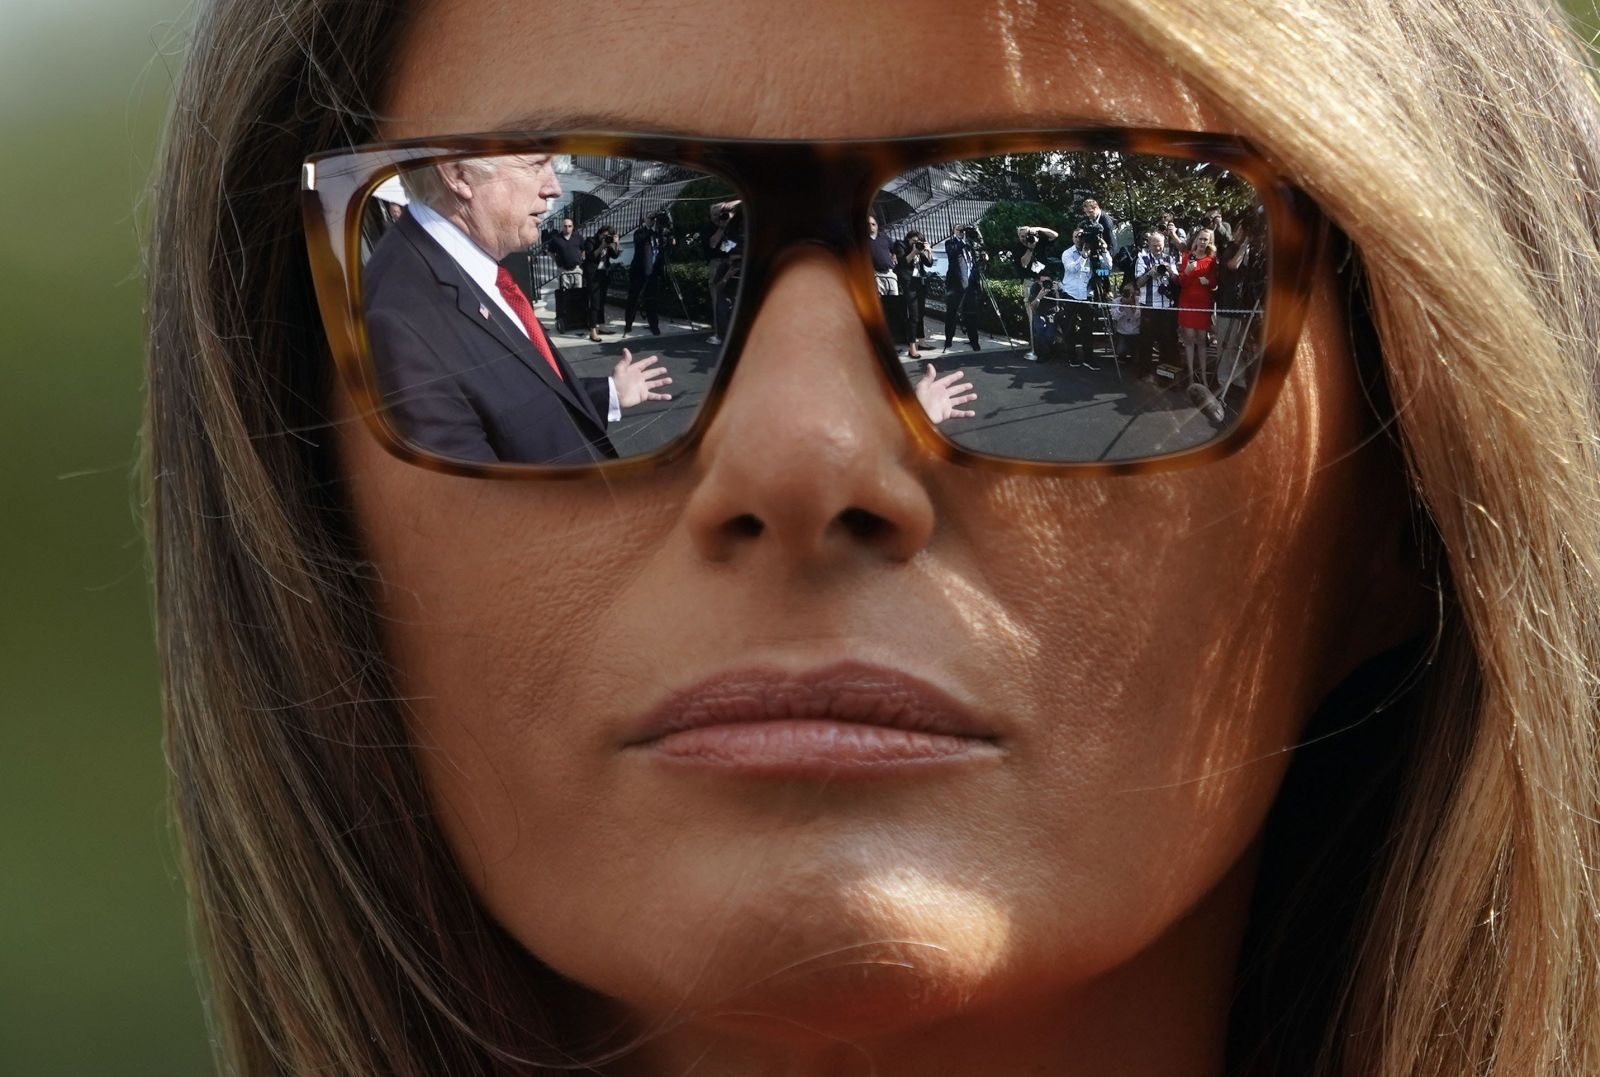 President Donald Trump and first lady Melania Trump walk across the South Lawn of the White House in Washington during their arrival on Marine One helicopter, Sunday, Sept. 10, 2017. (AP Photo/Pablo Martinez Monsivais)